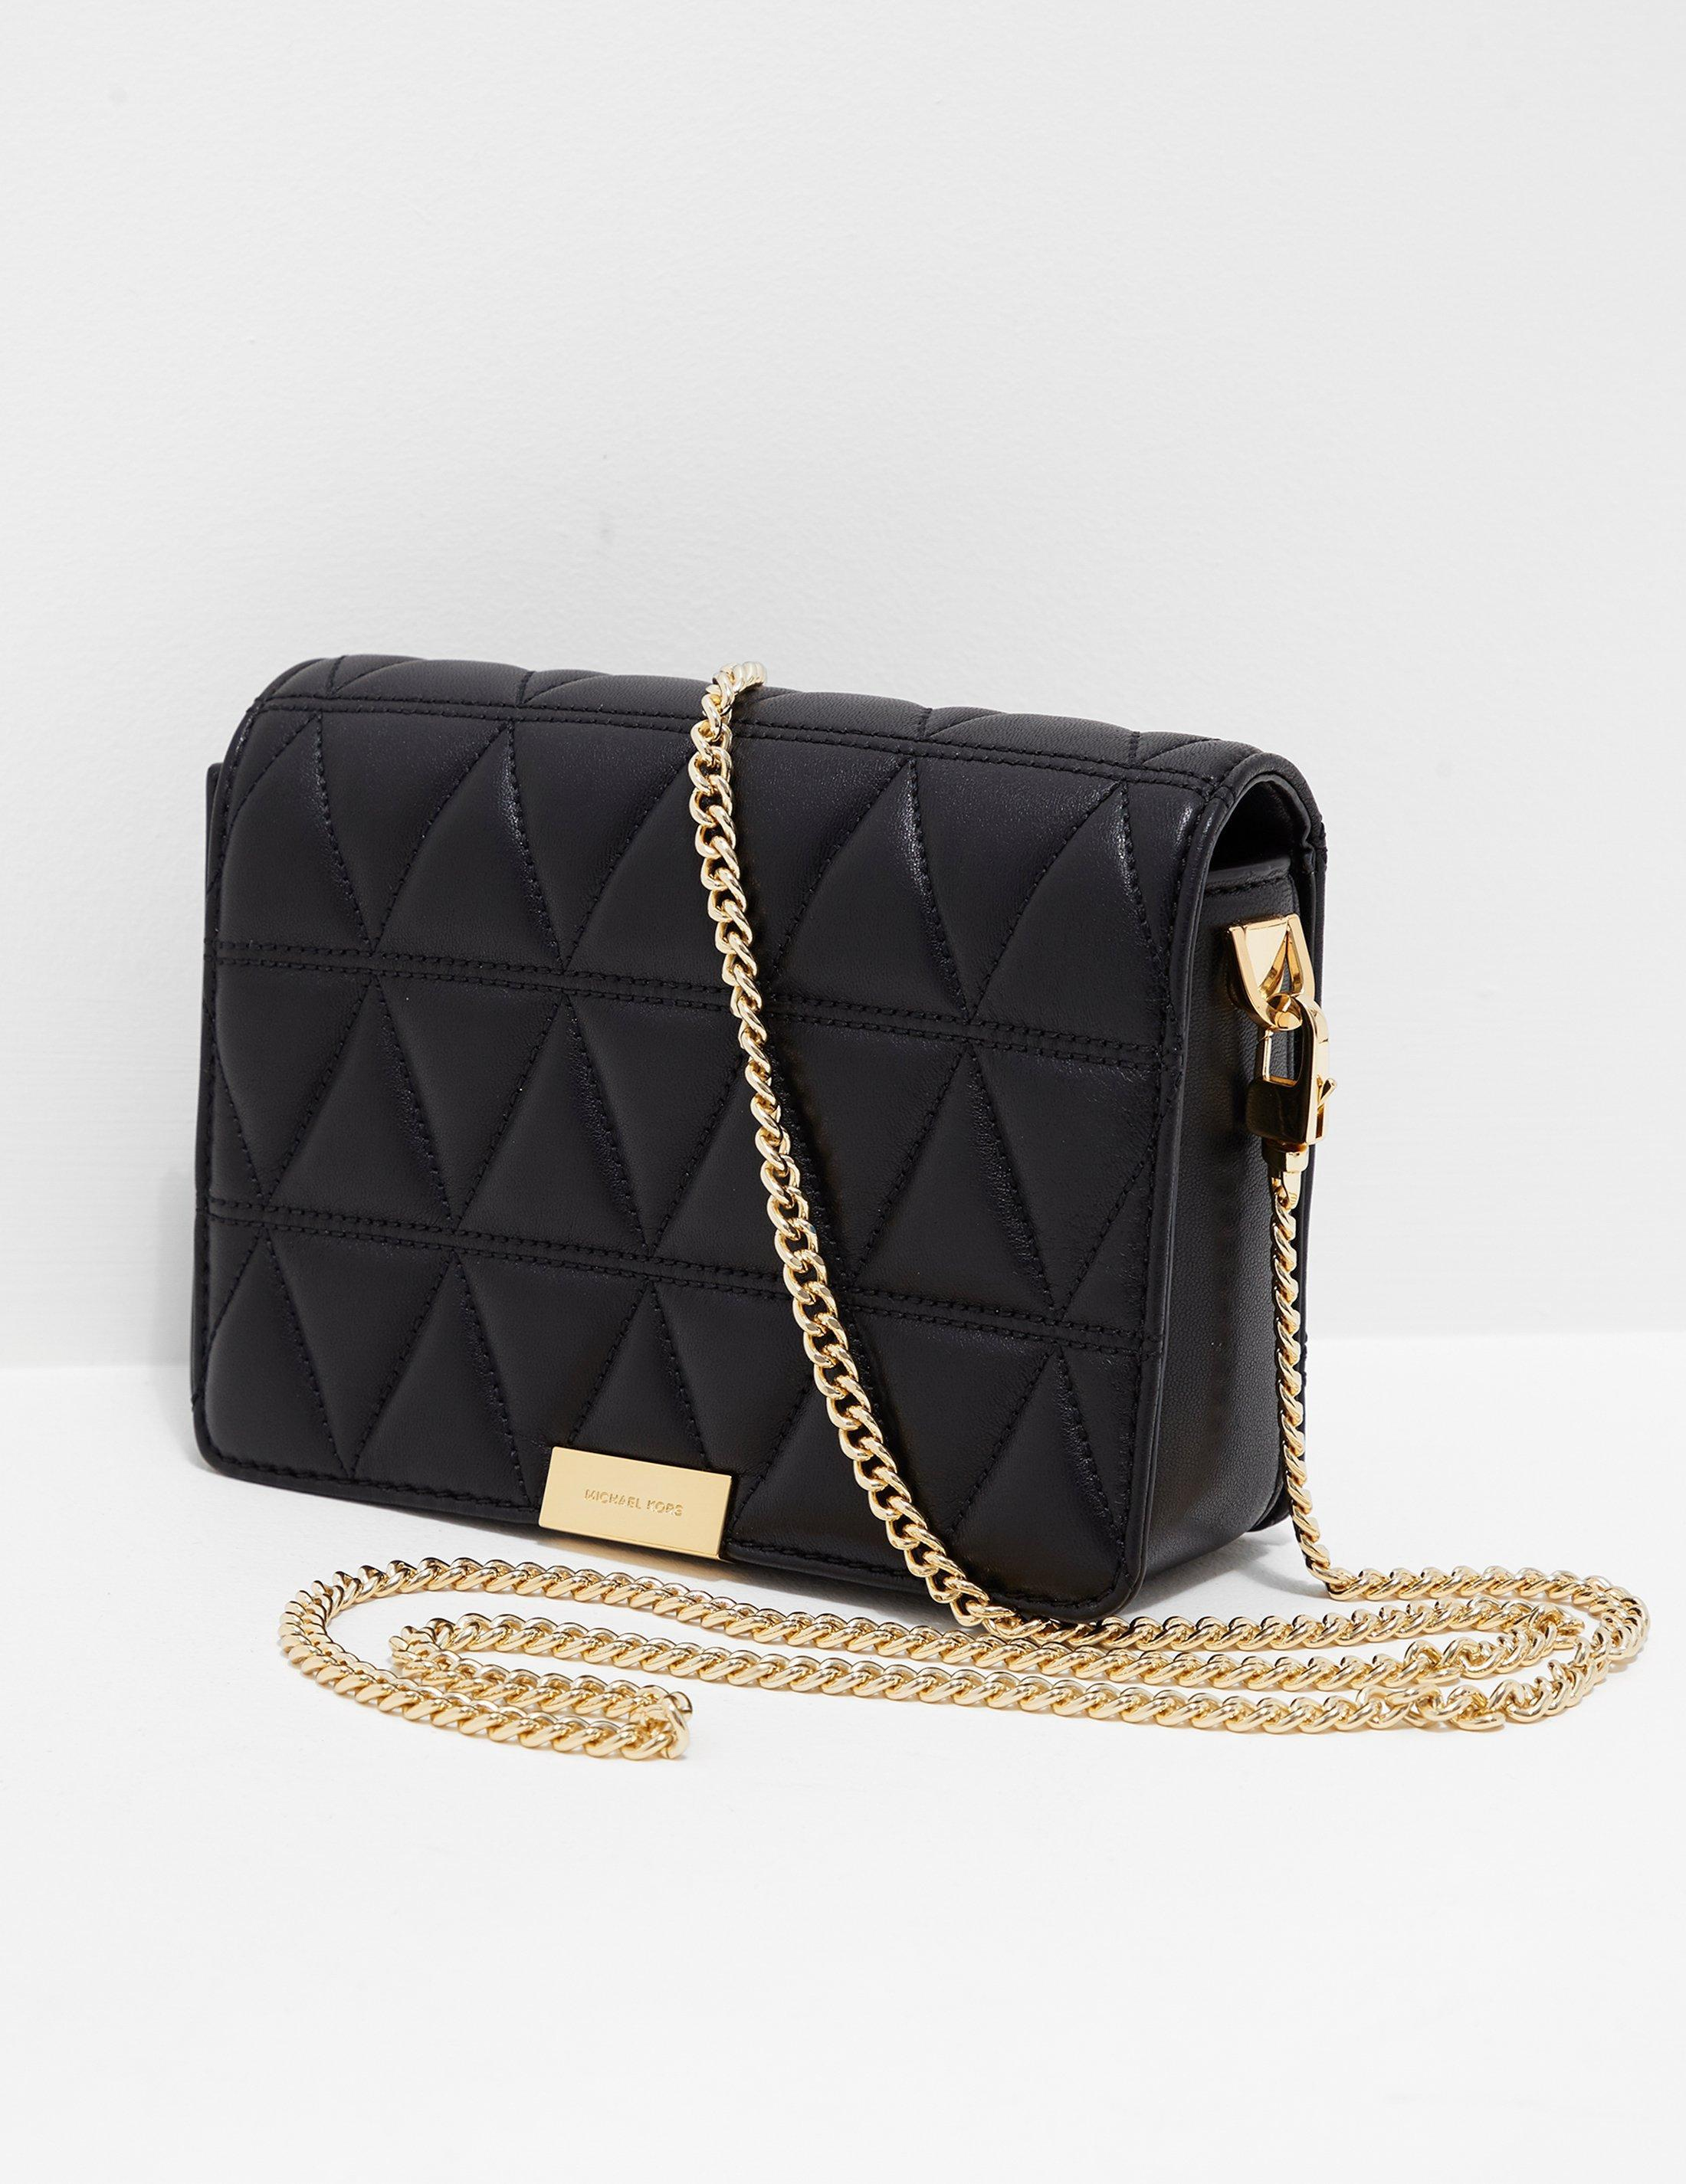 6a4a07757d ... sale lyst michael kors womens jade quilted clutch bag black gold in  black be97a e4fbc